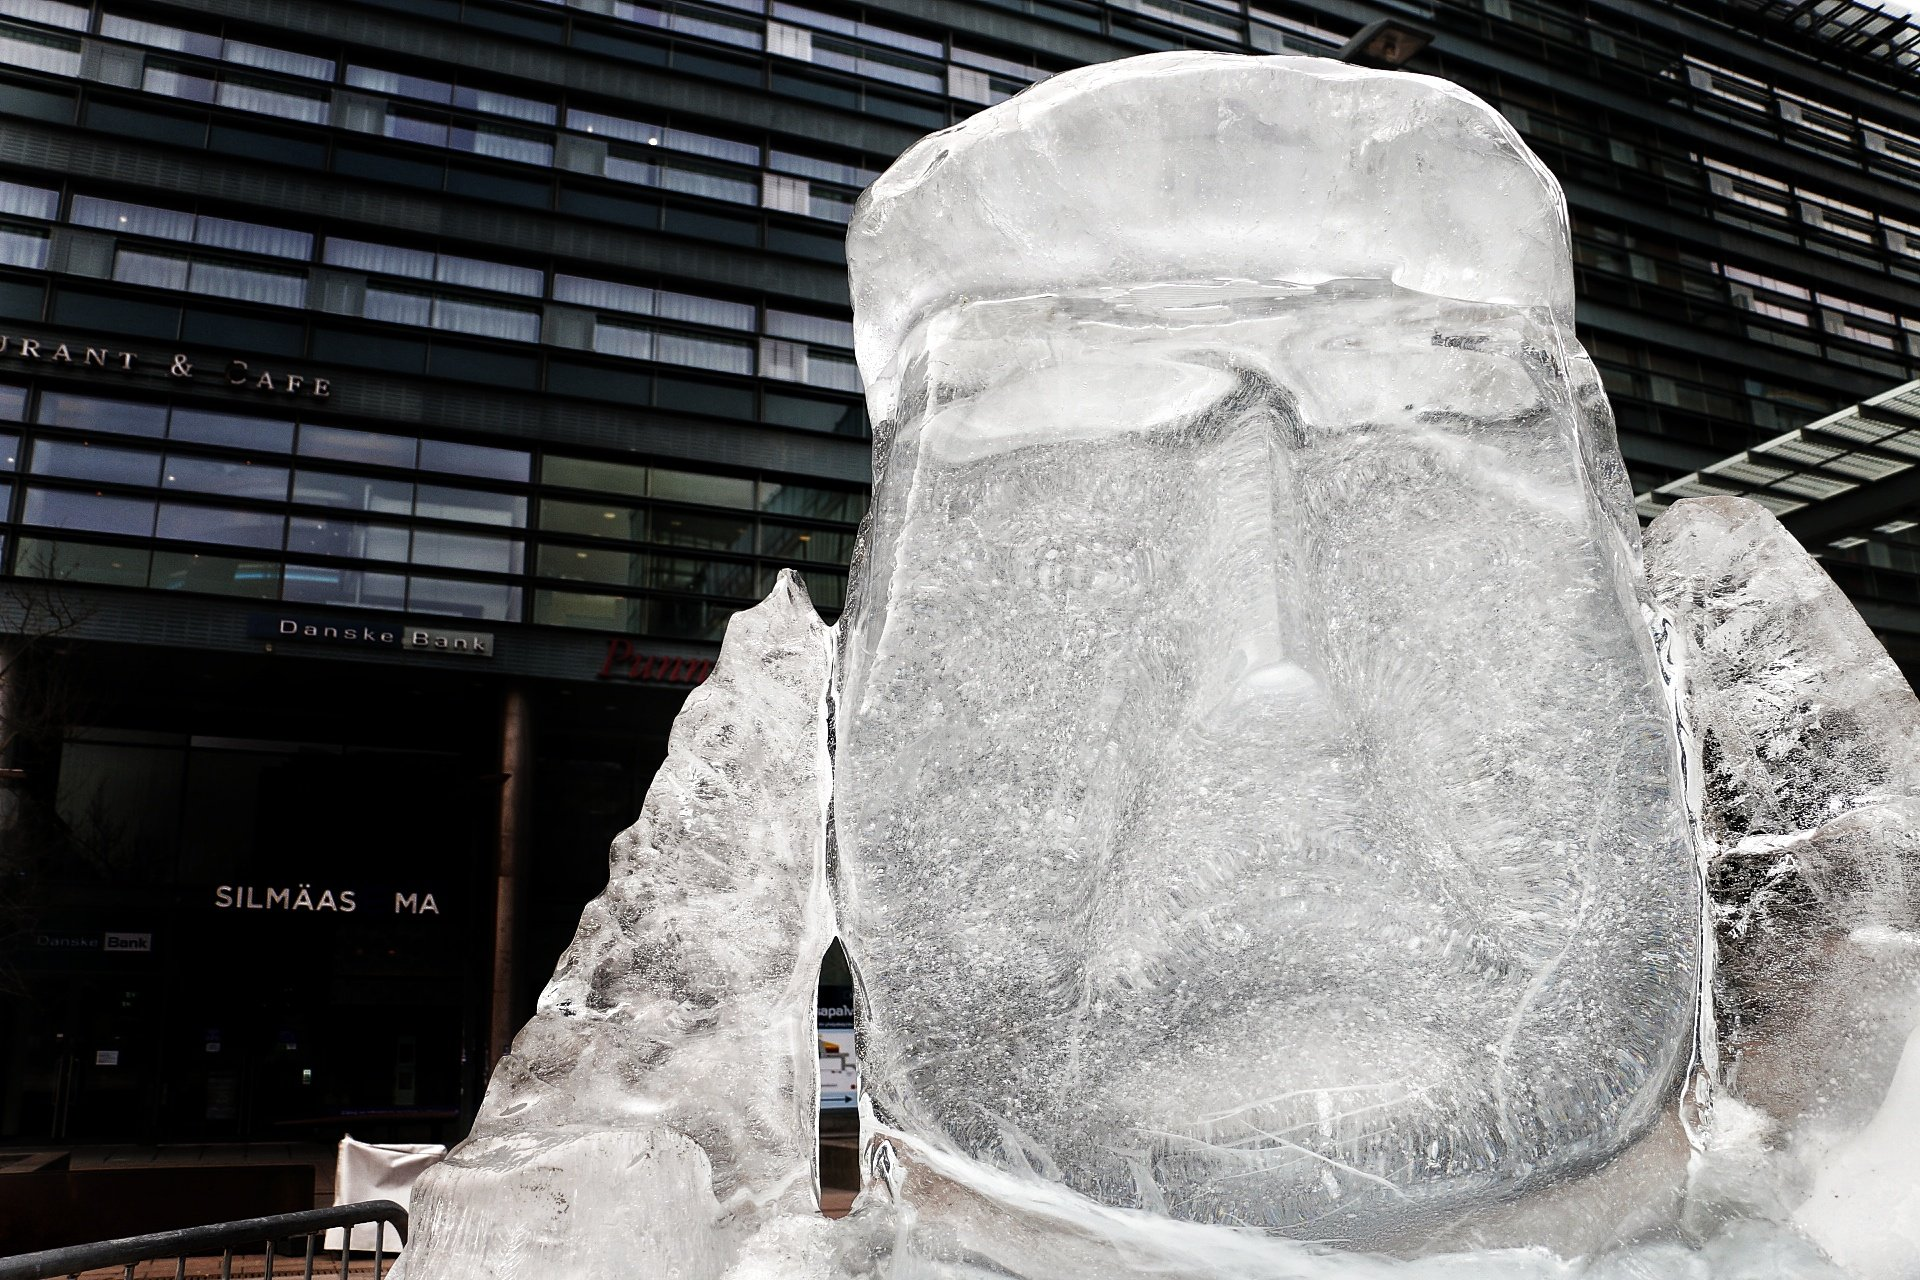 Finnish Association to Sculpt a Giant Face of Trump Into Arctic Glacier – First Scale Model Rises at Narinkkatori in Helsinki